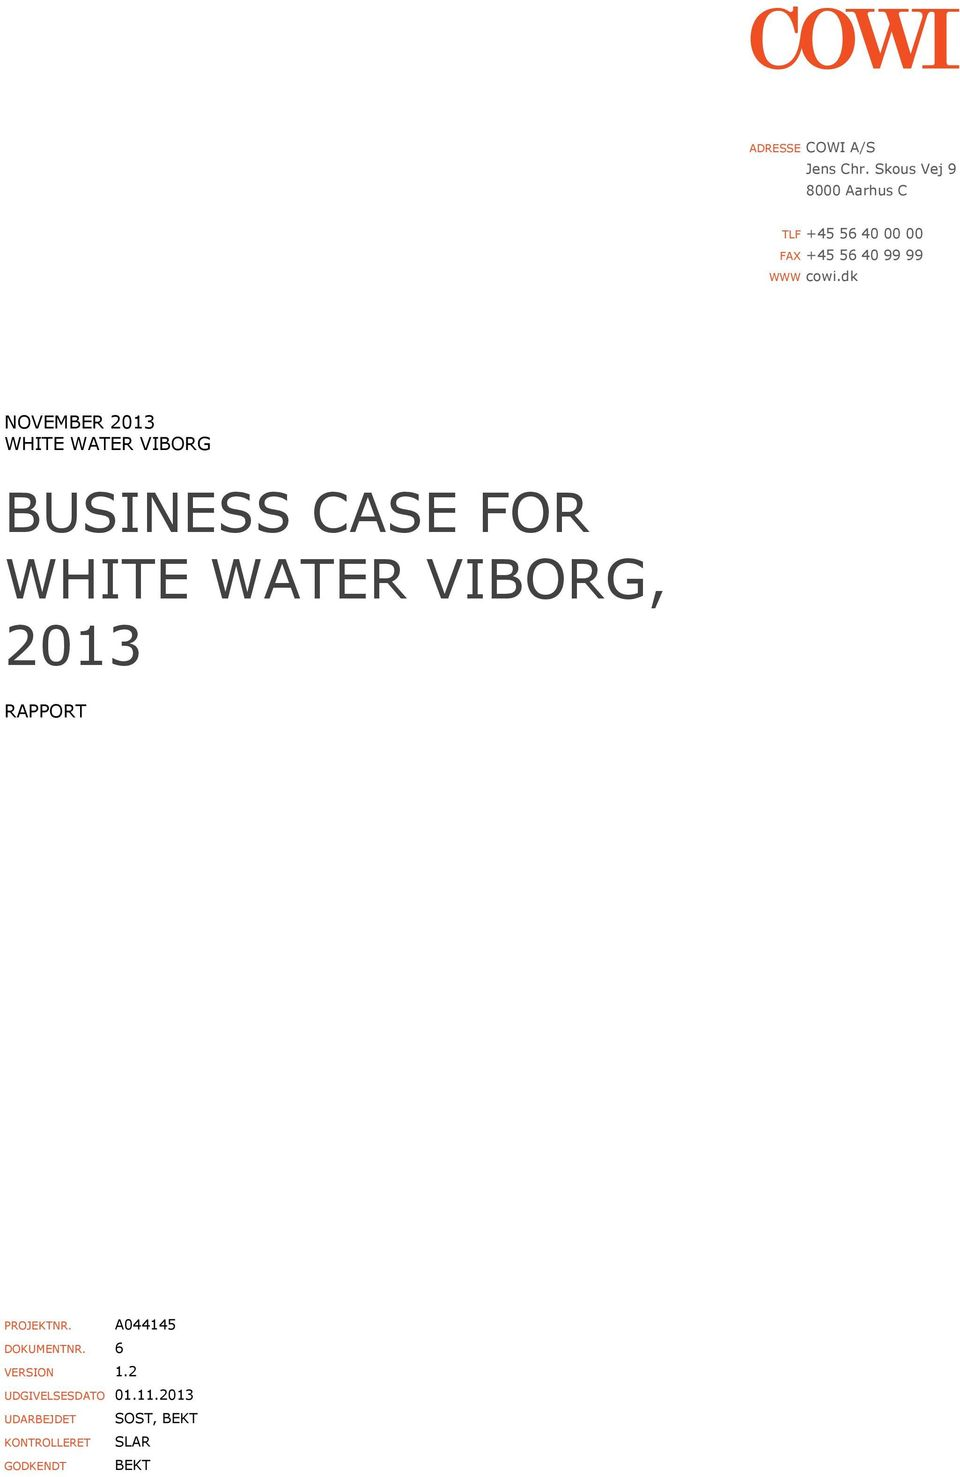 dk NOVEMBER 2013 WHITE WATER VIBORG BUSINESS CASE FOR WHITE WATER VIBORG, 2013